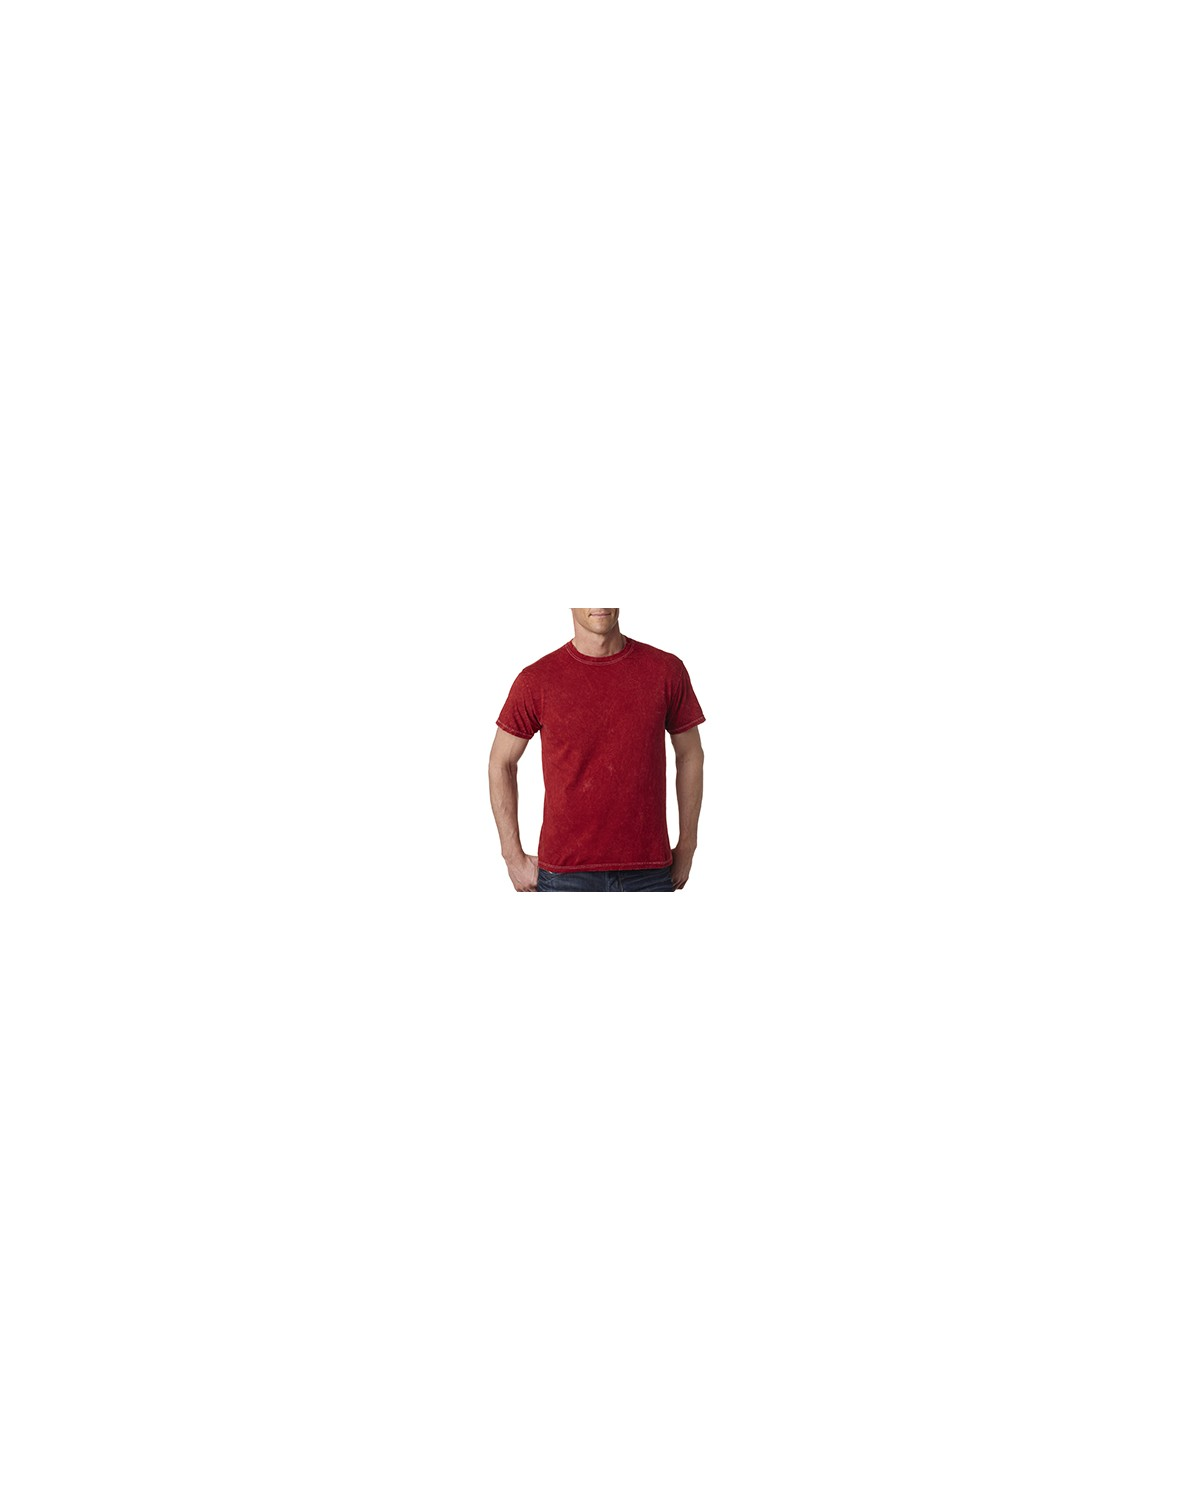 CD1300 Tie-Dye Drop Ship MINERAL RED